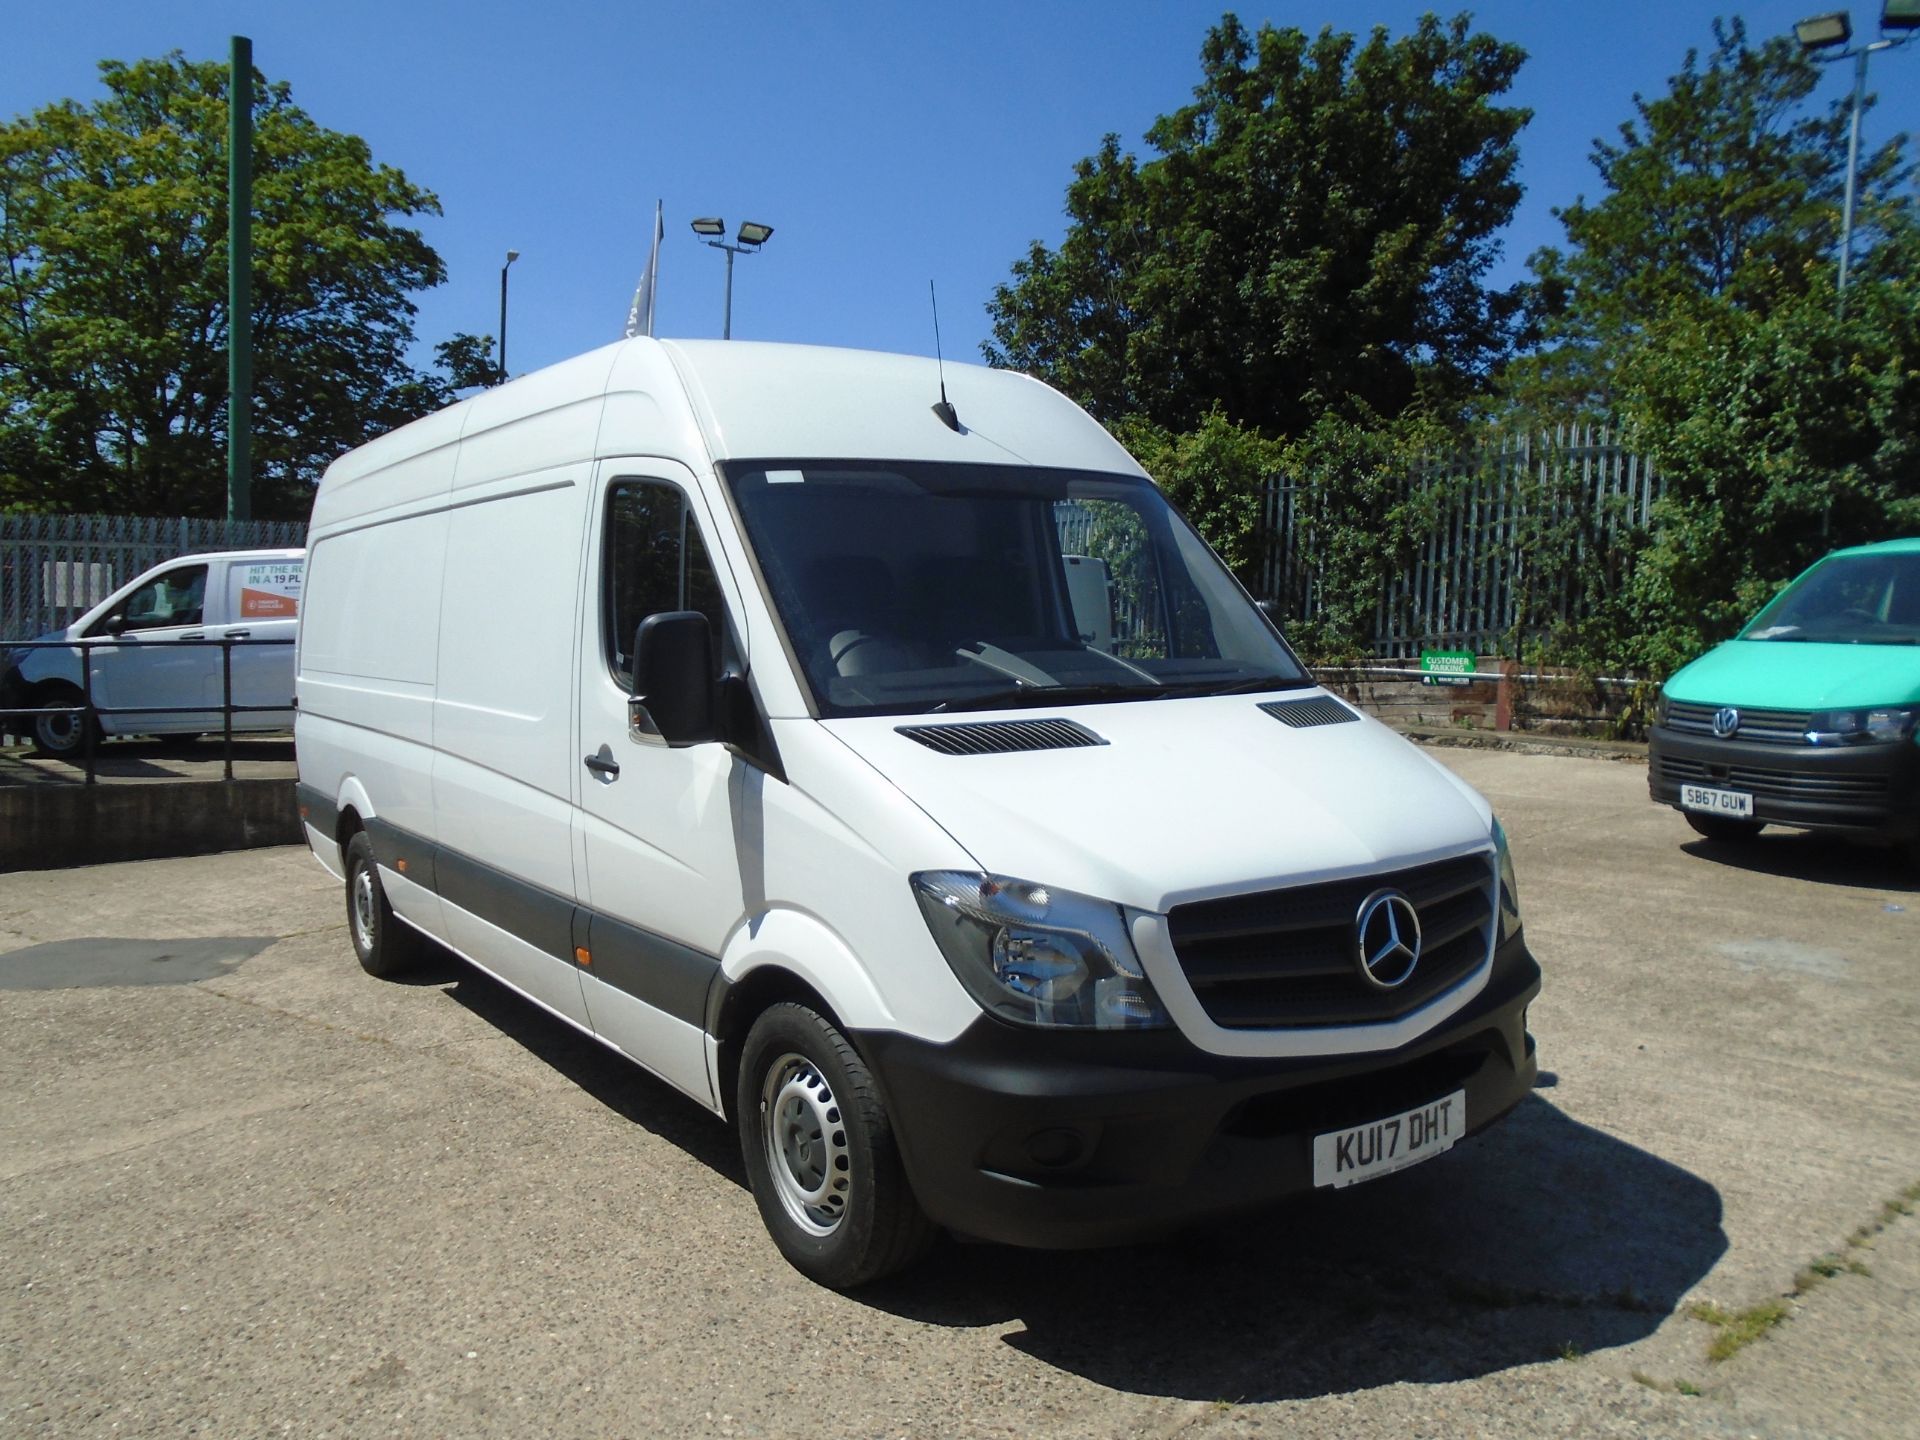 2017 Mercedes-Benz Sprinter 3.5T High Roof Van (KU17DHT)